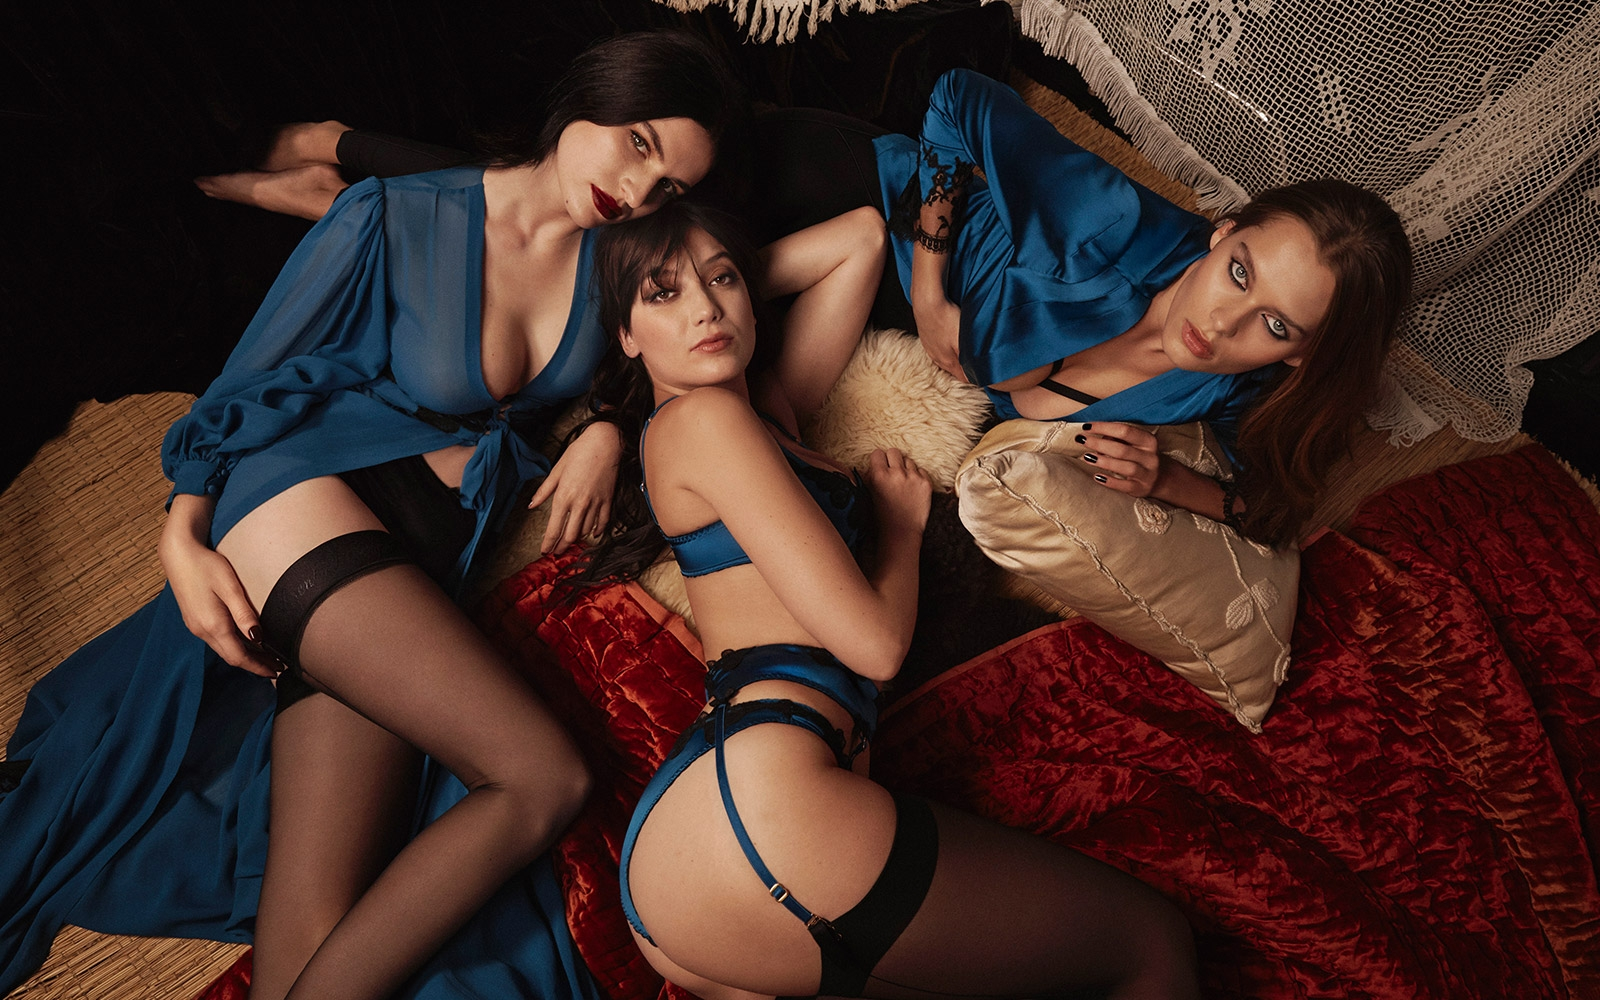 Autumn Winter lookbook from Agent Provocateur starring Daisy Lowe, Tali Lennox and Solveig Mørk Hansen